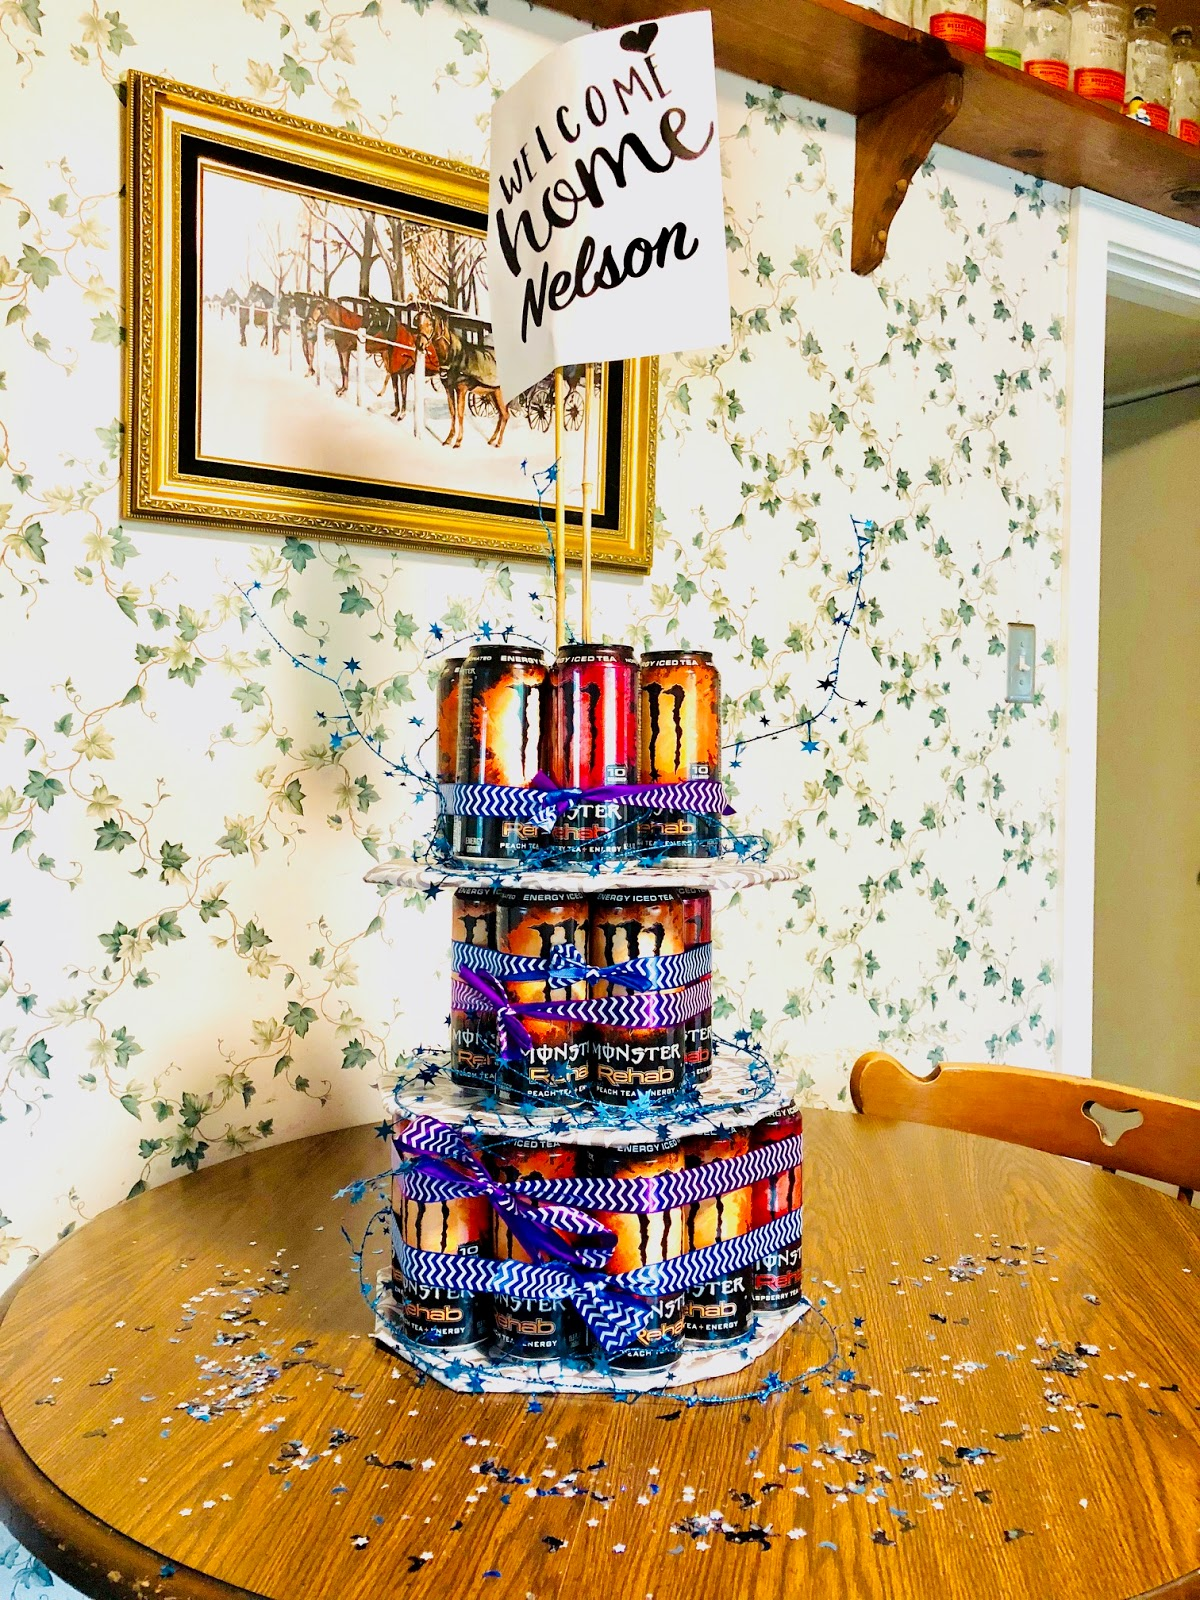 army, beer can cake, can cake, can cake idea, energy drink ideas, monster cake idea, monster energy drinks, monster rehab energy tea, welcome home, welcome home gift,